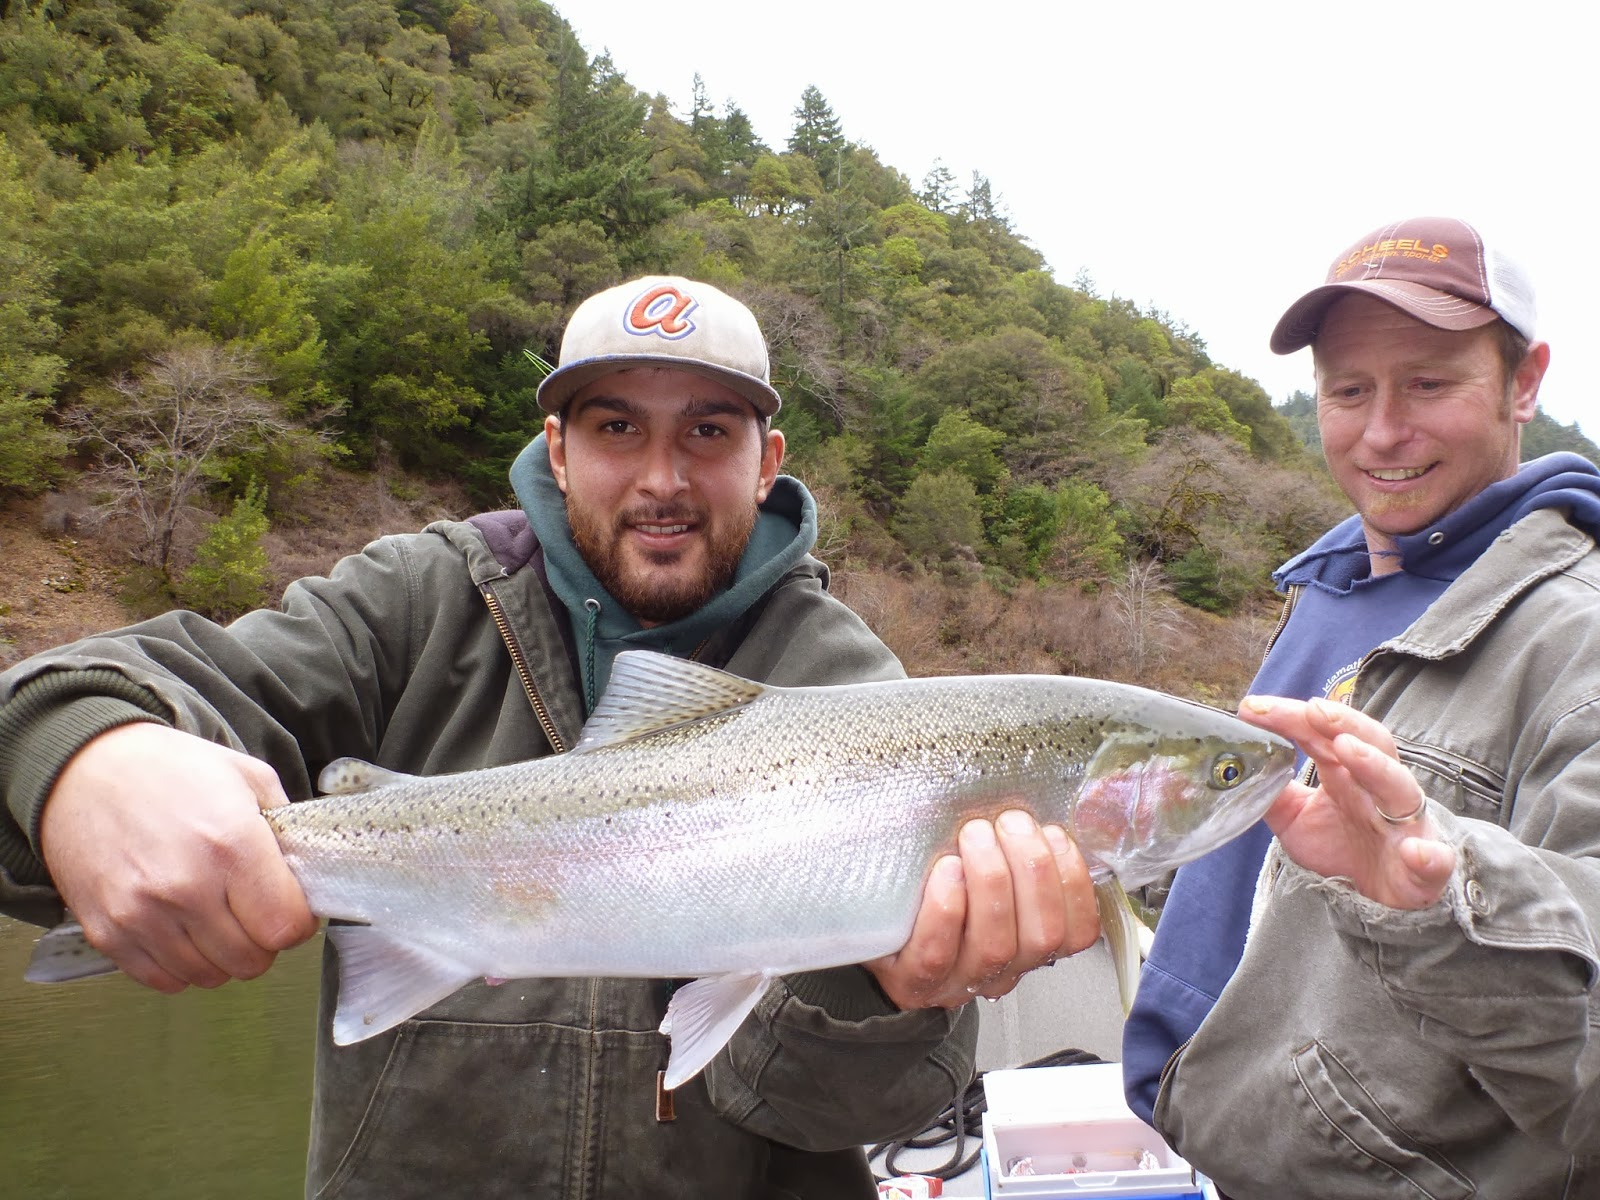 Steelhead fishing the Klamath River with Ironhead Guide Service.